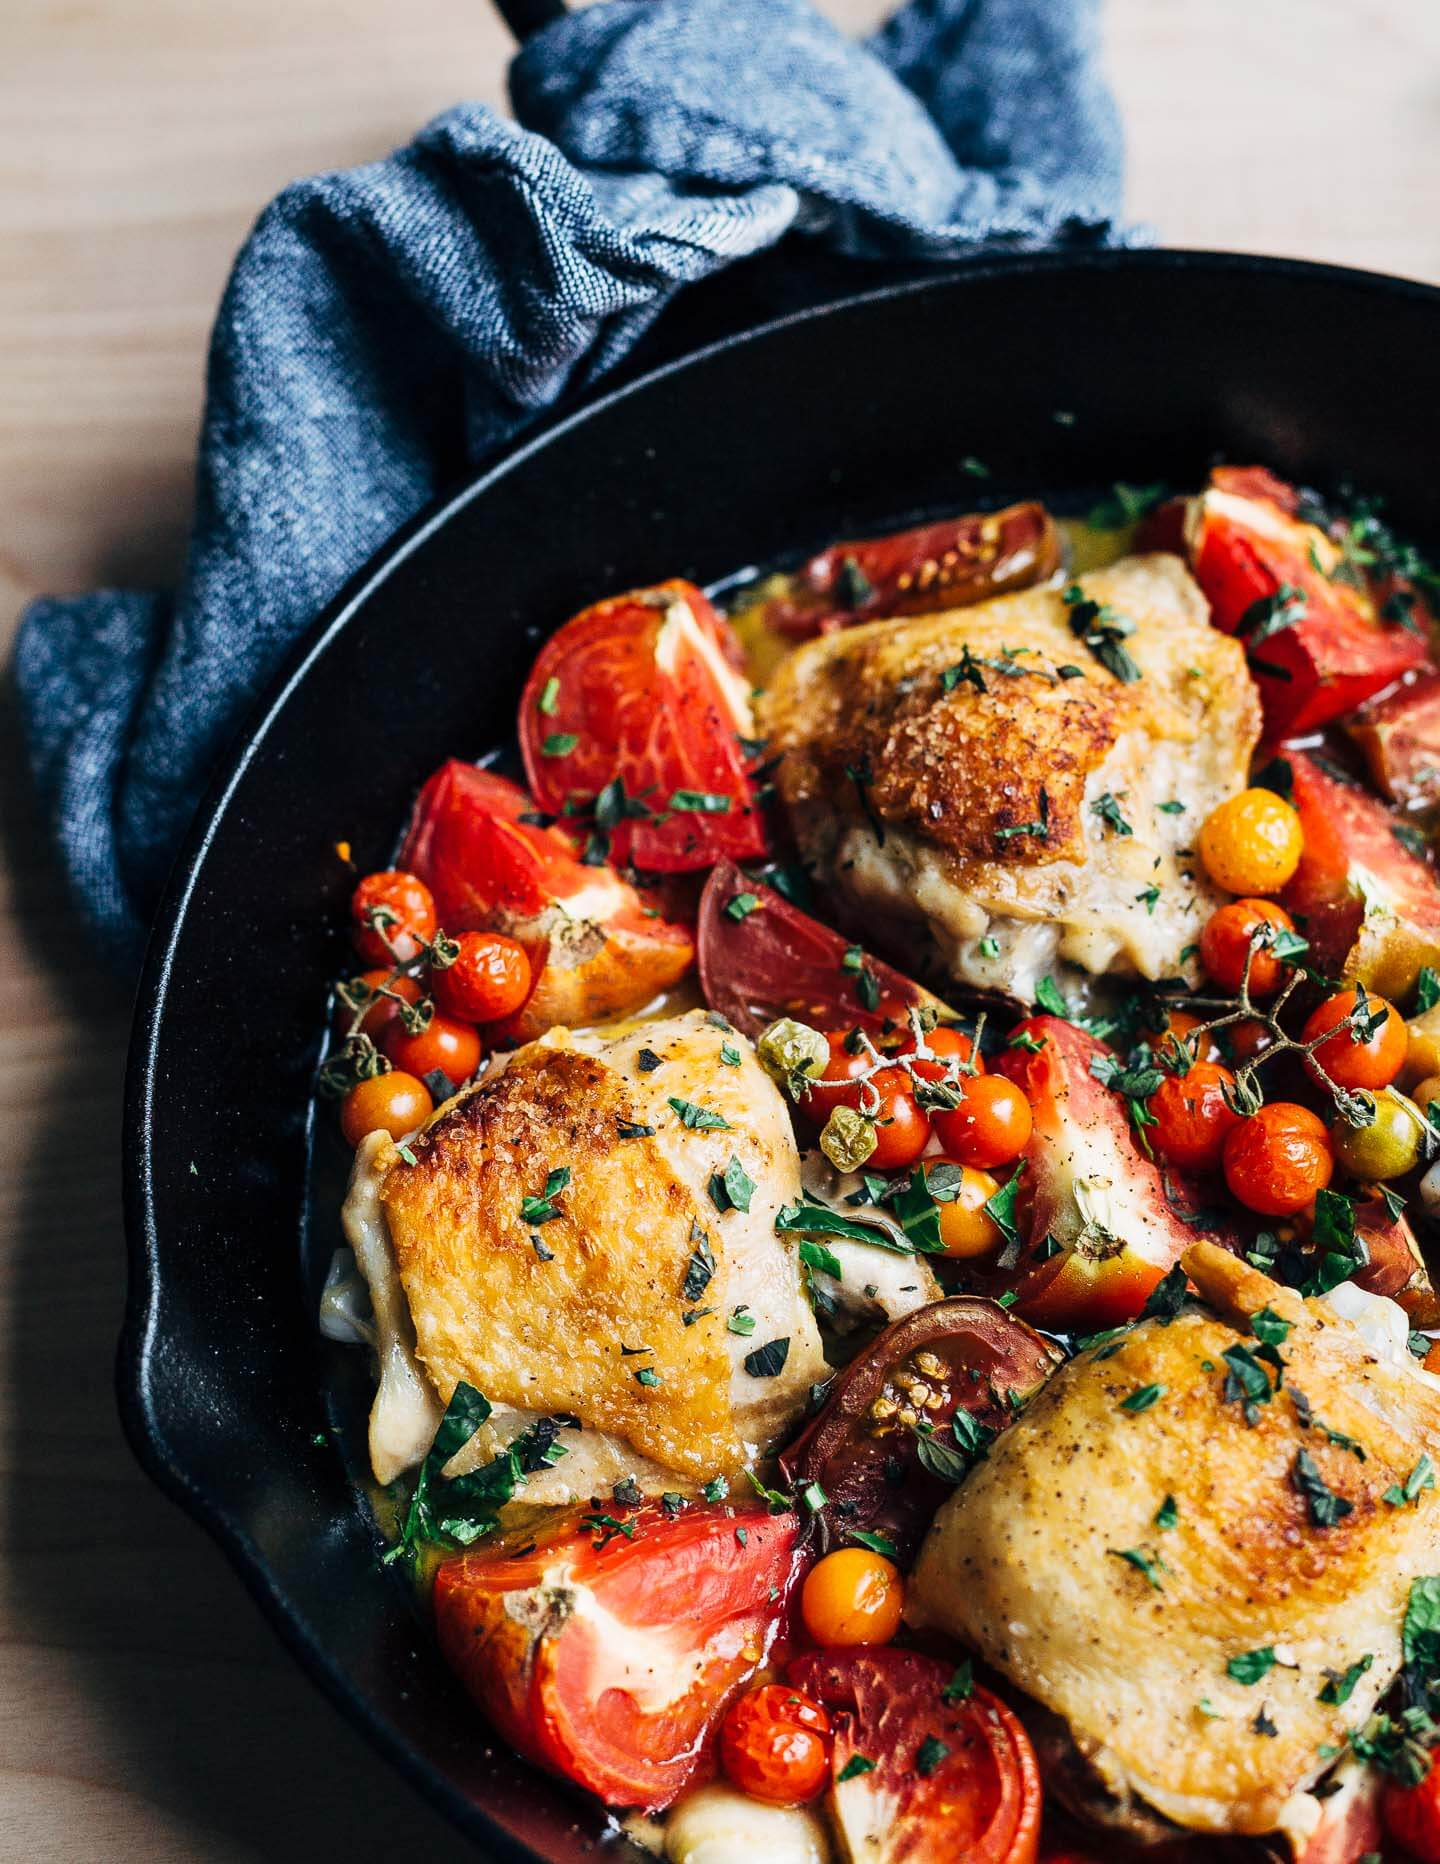 Baked Chicken With Tomatoes And Garlic Brooklyn Supper